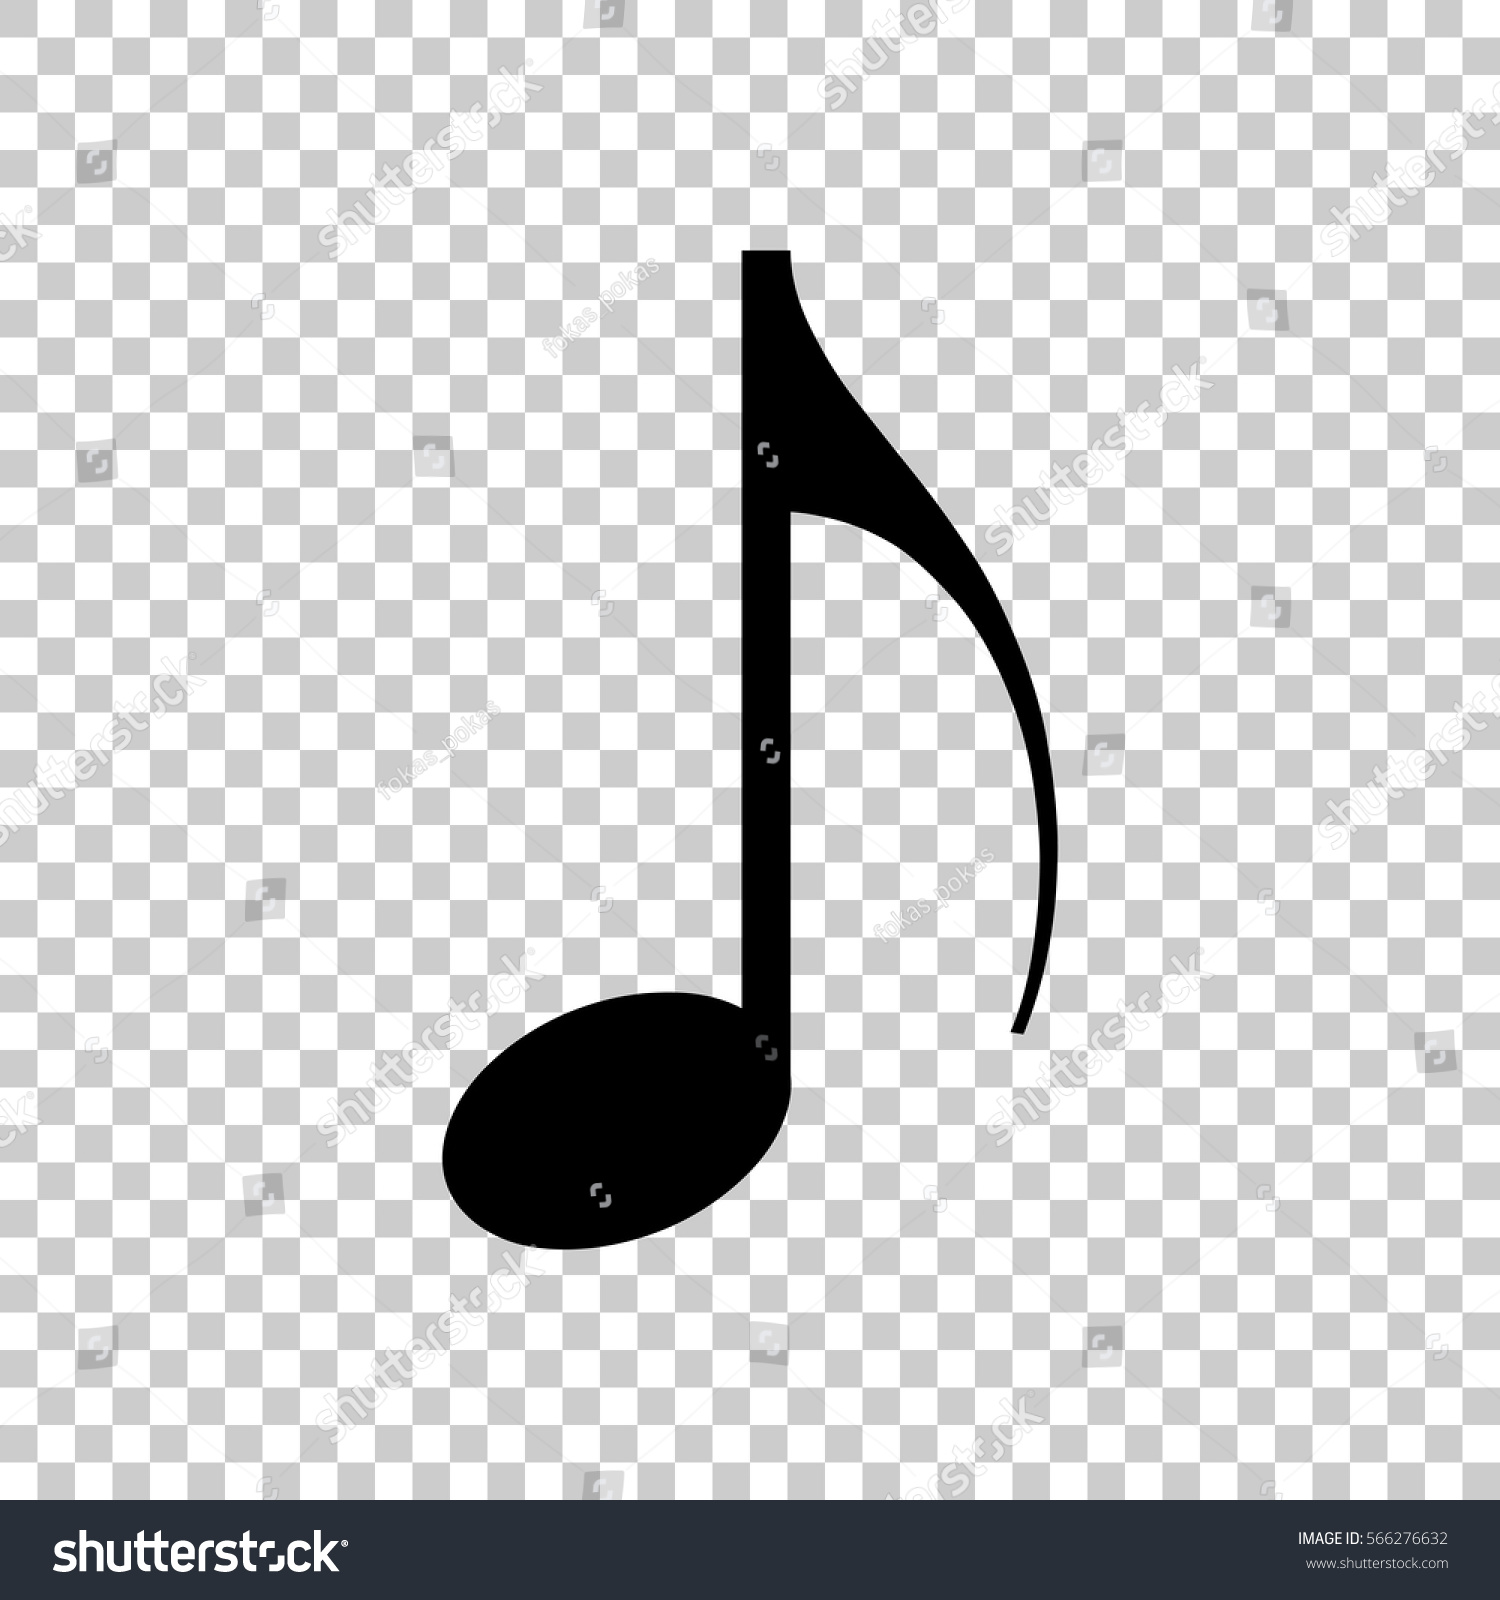 Music note icon black icon on stock vector 566276632 shutterstock music note icon black icon on transparent background altavistaventures Images